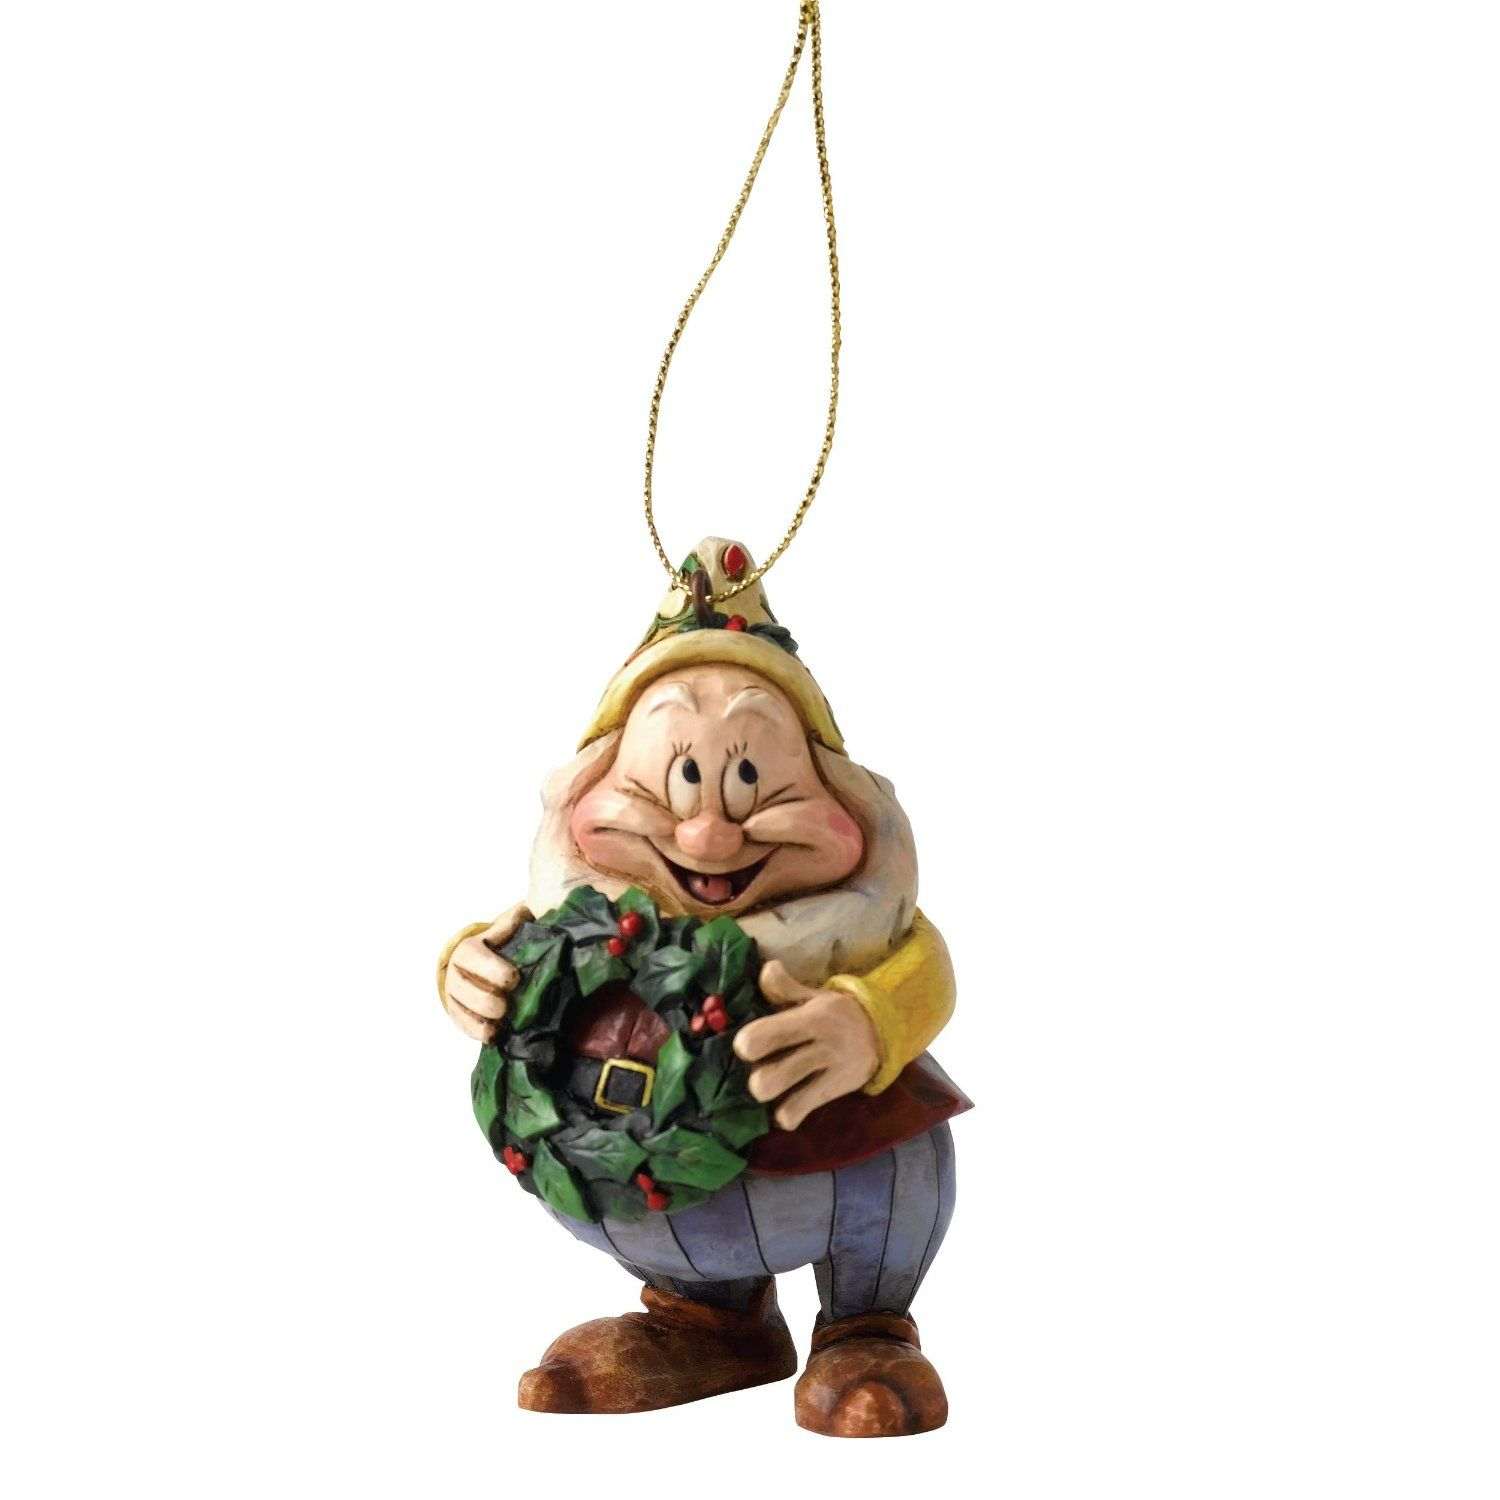 Disney Tradtions Happy Hanging Ornament Amazon Co Uk Kitchen